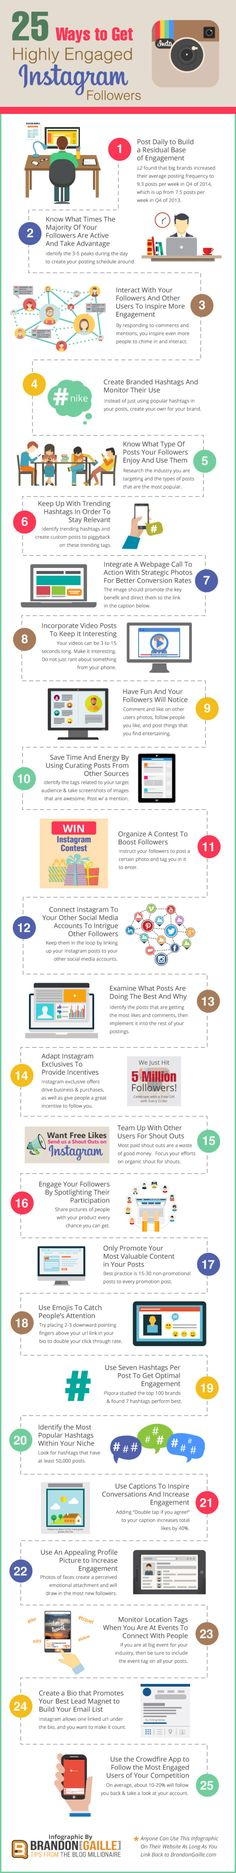 Instagram Tips 25 Ways to Get Loads of Highly Engaged Followers  #SocialMedia #Instgram